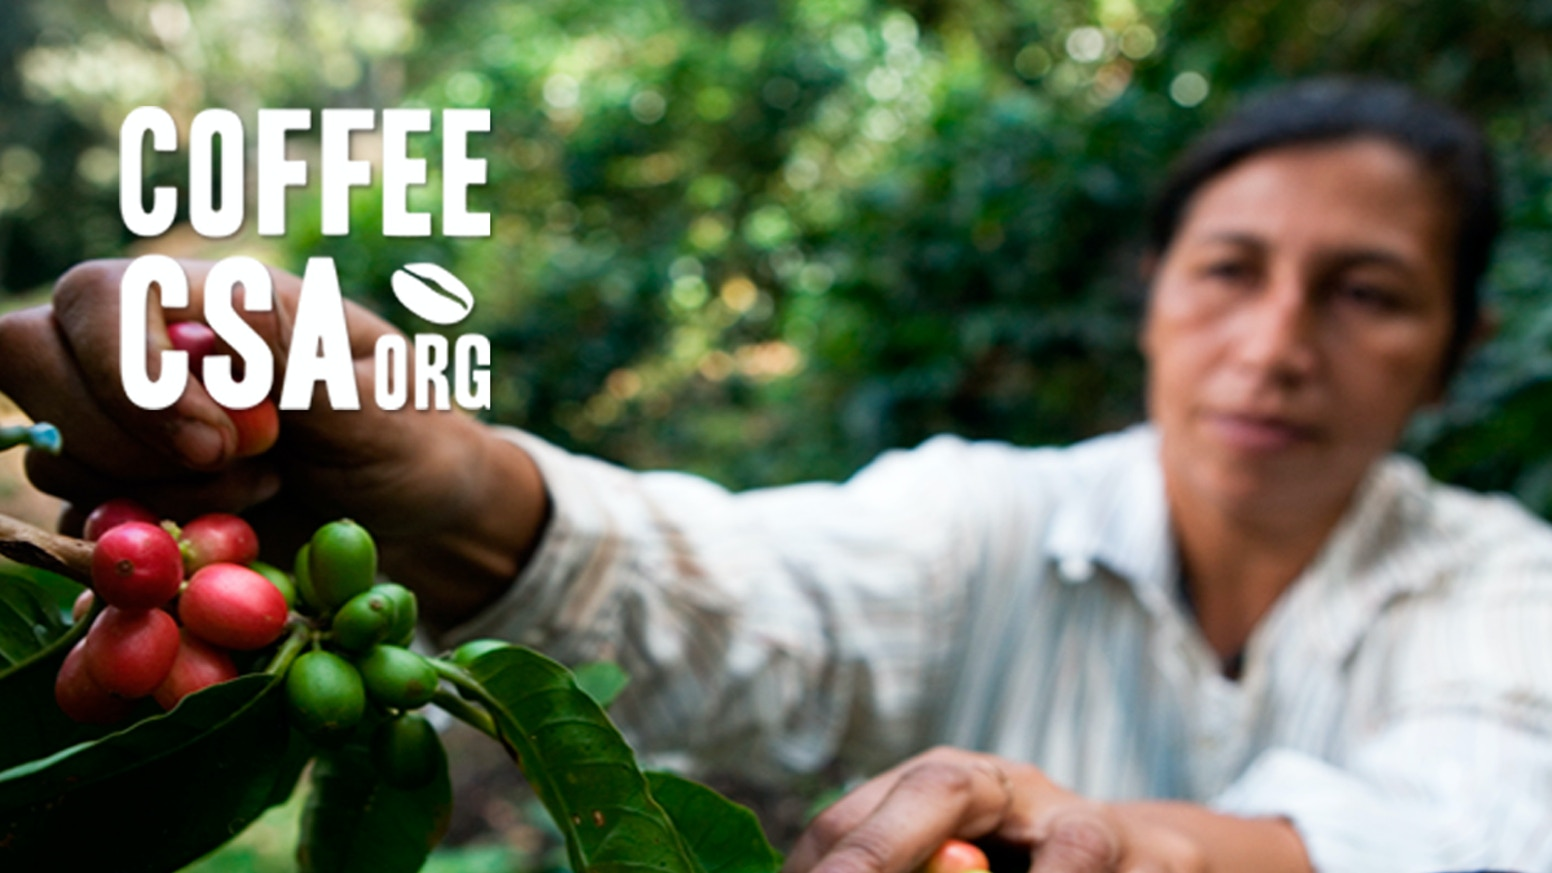 Receive monthly deliveries of fresh, organic coffee directly from small farmers around the world. CoffeeCSA.org is 100% Farmer Owned.